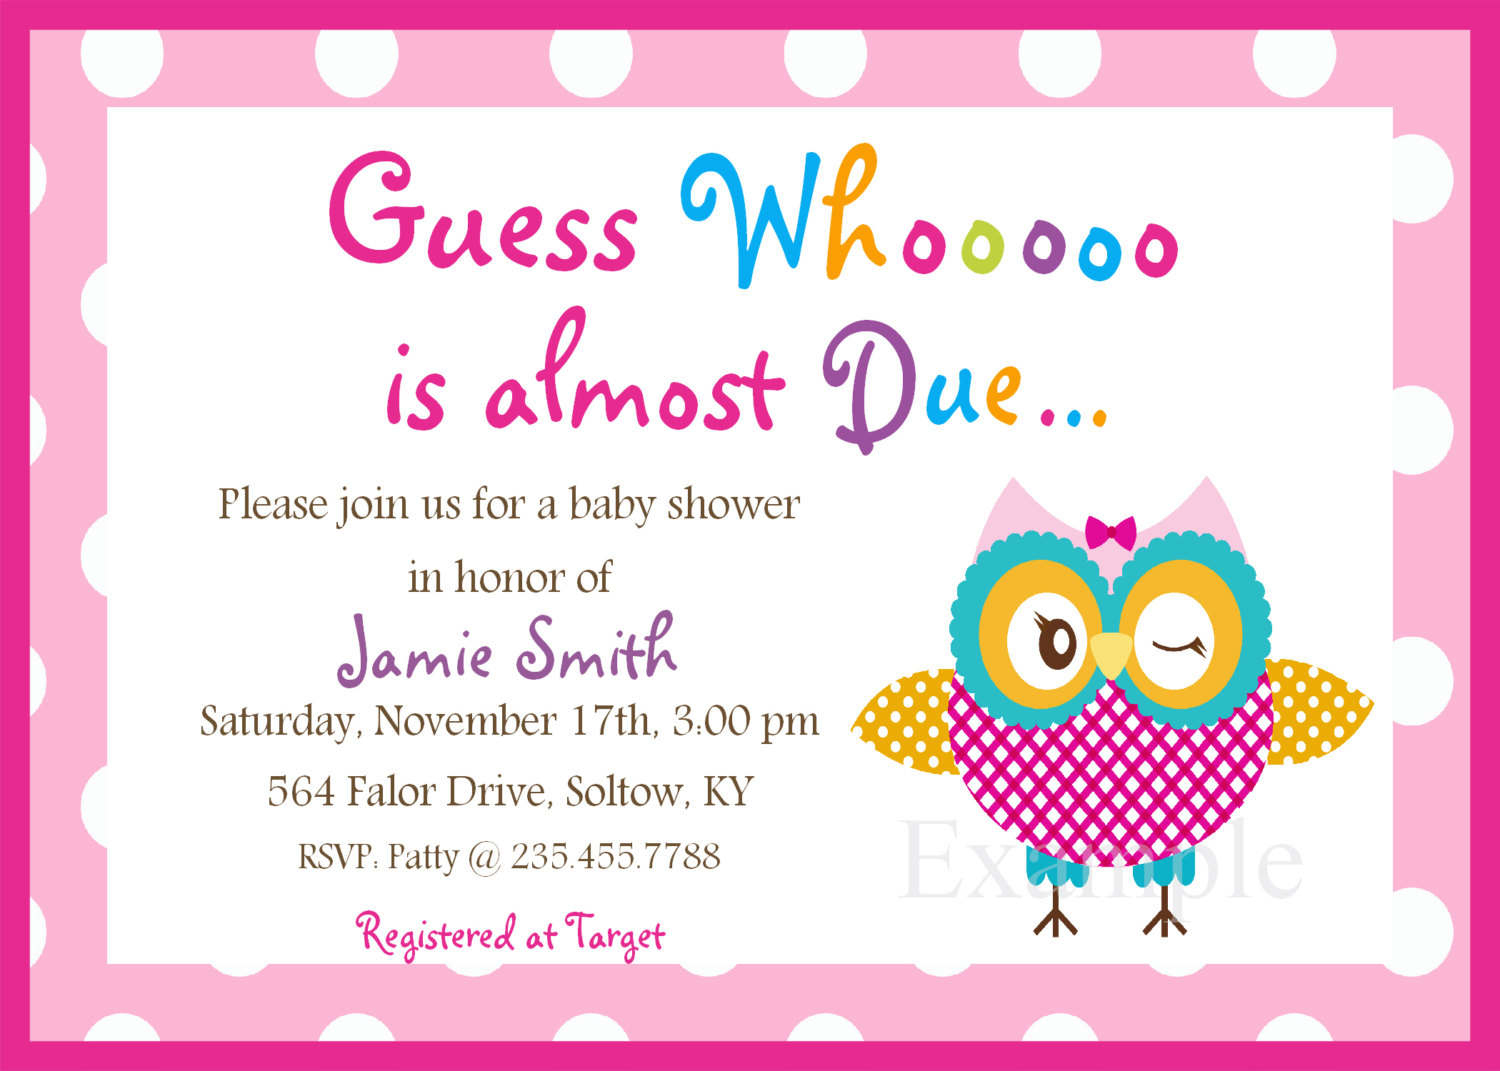 Free Baby Shower Invitation Templates Jungle Animals Elegant Baby - Create Your Own Baby Shower Invitations Free Printable